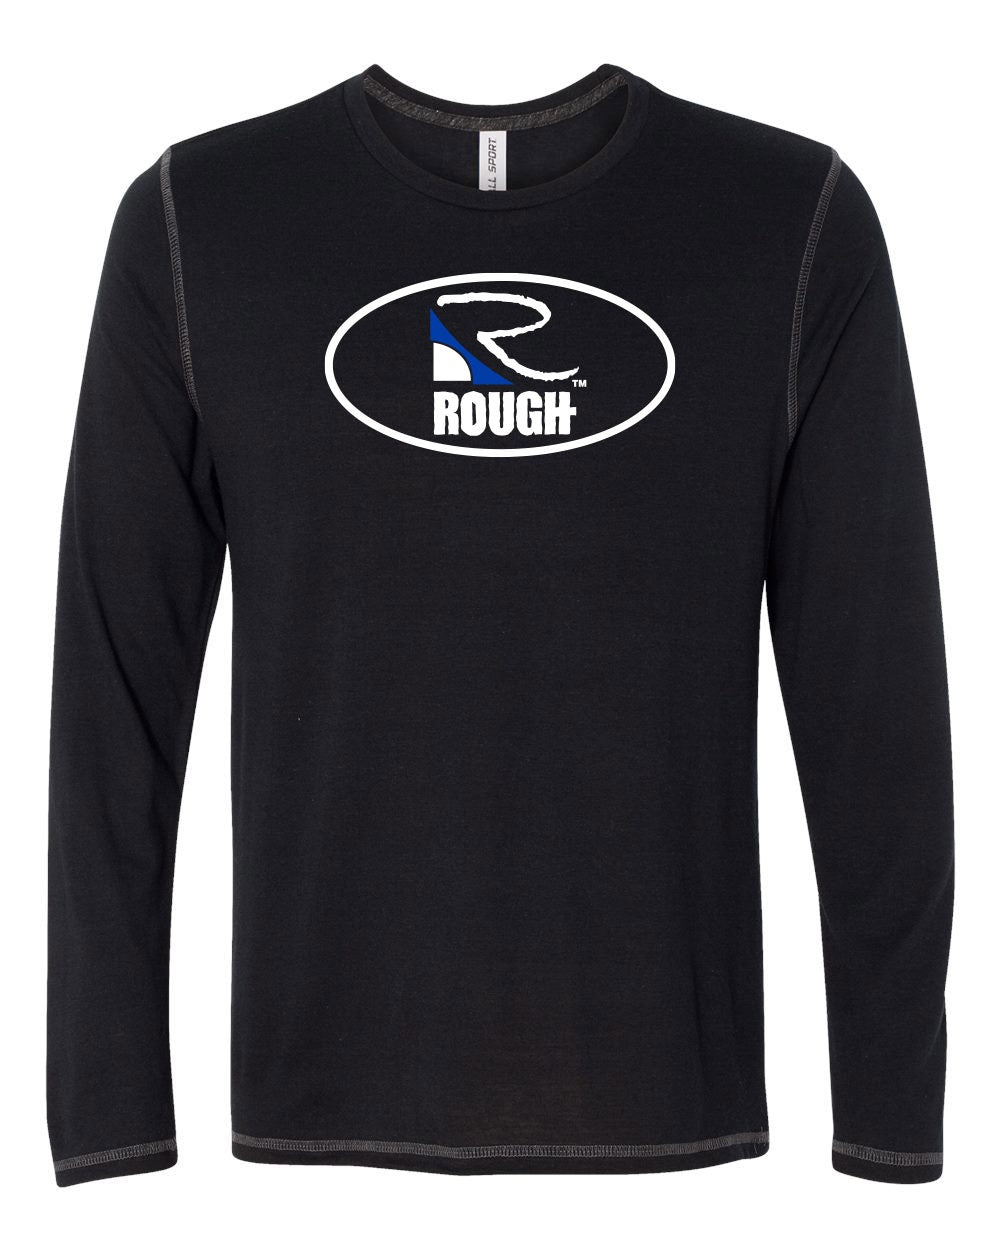 Men's Razor's Edge Triblend Long Sleeve Shirt